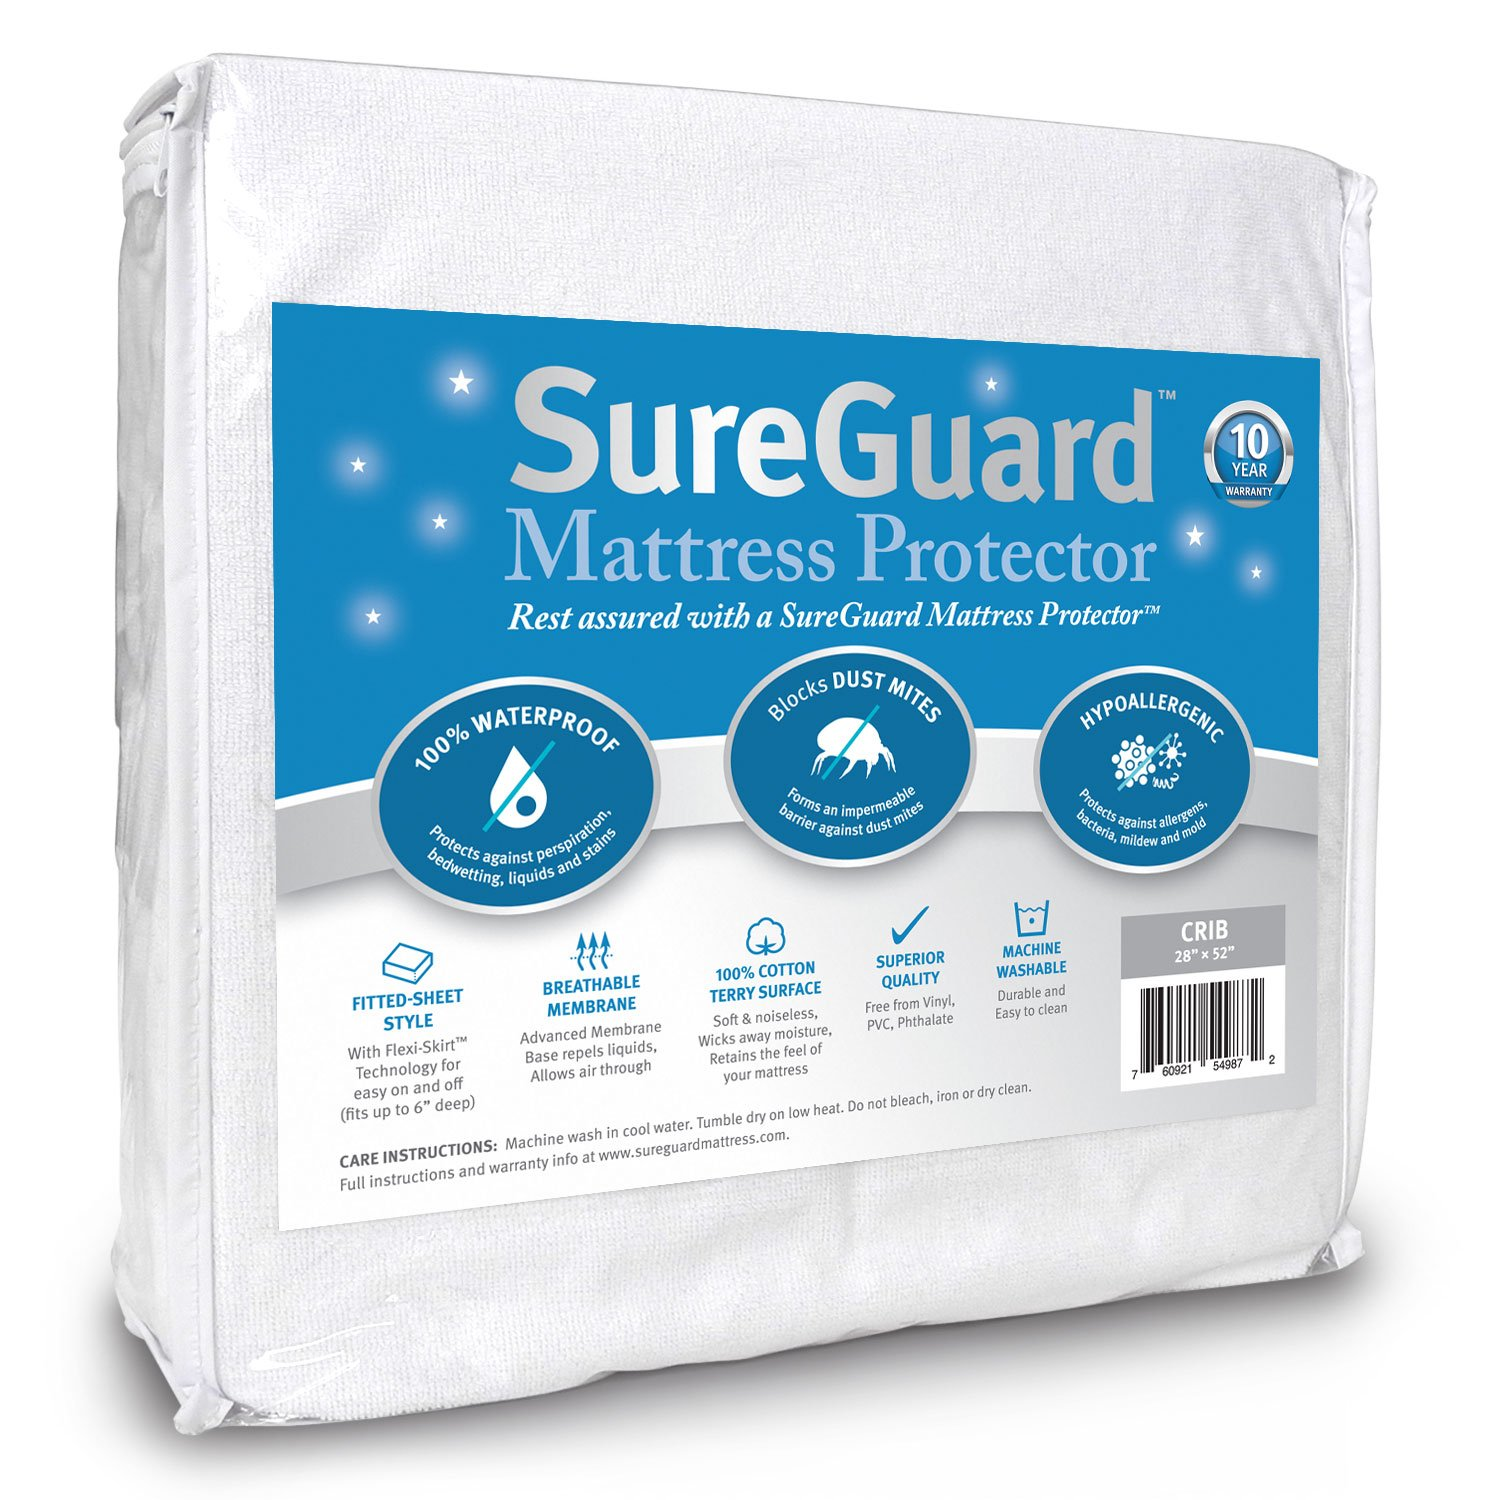 SureGuard Mattress Protectors Crib Size 100% Waterproof, Hypoallergenic - Premium Fitted Cotton Terry Cover - 10 Year Warranty